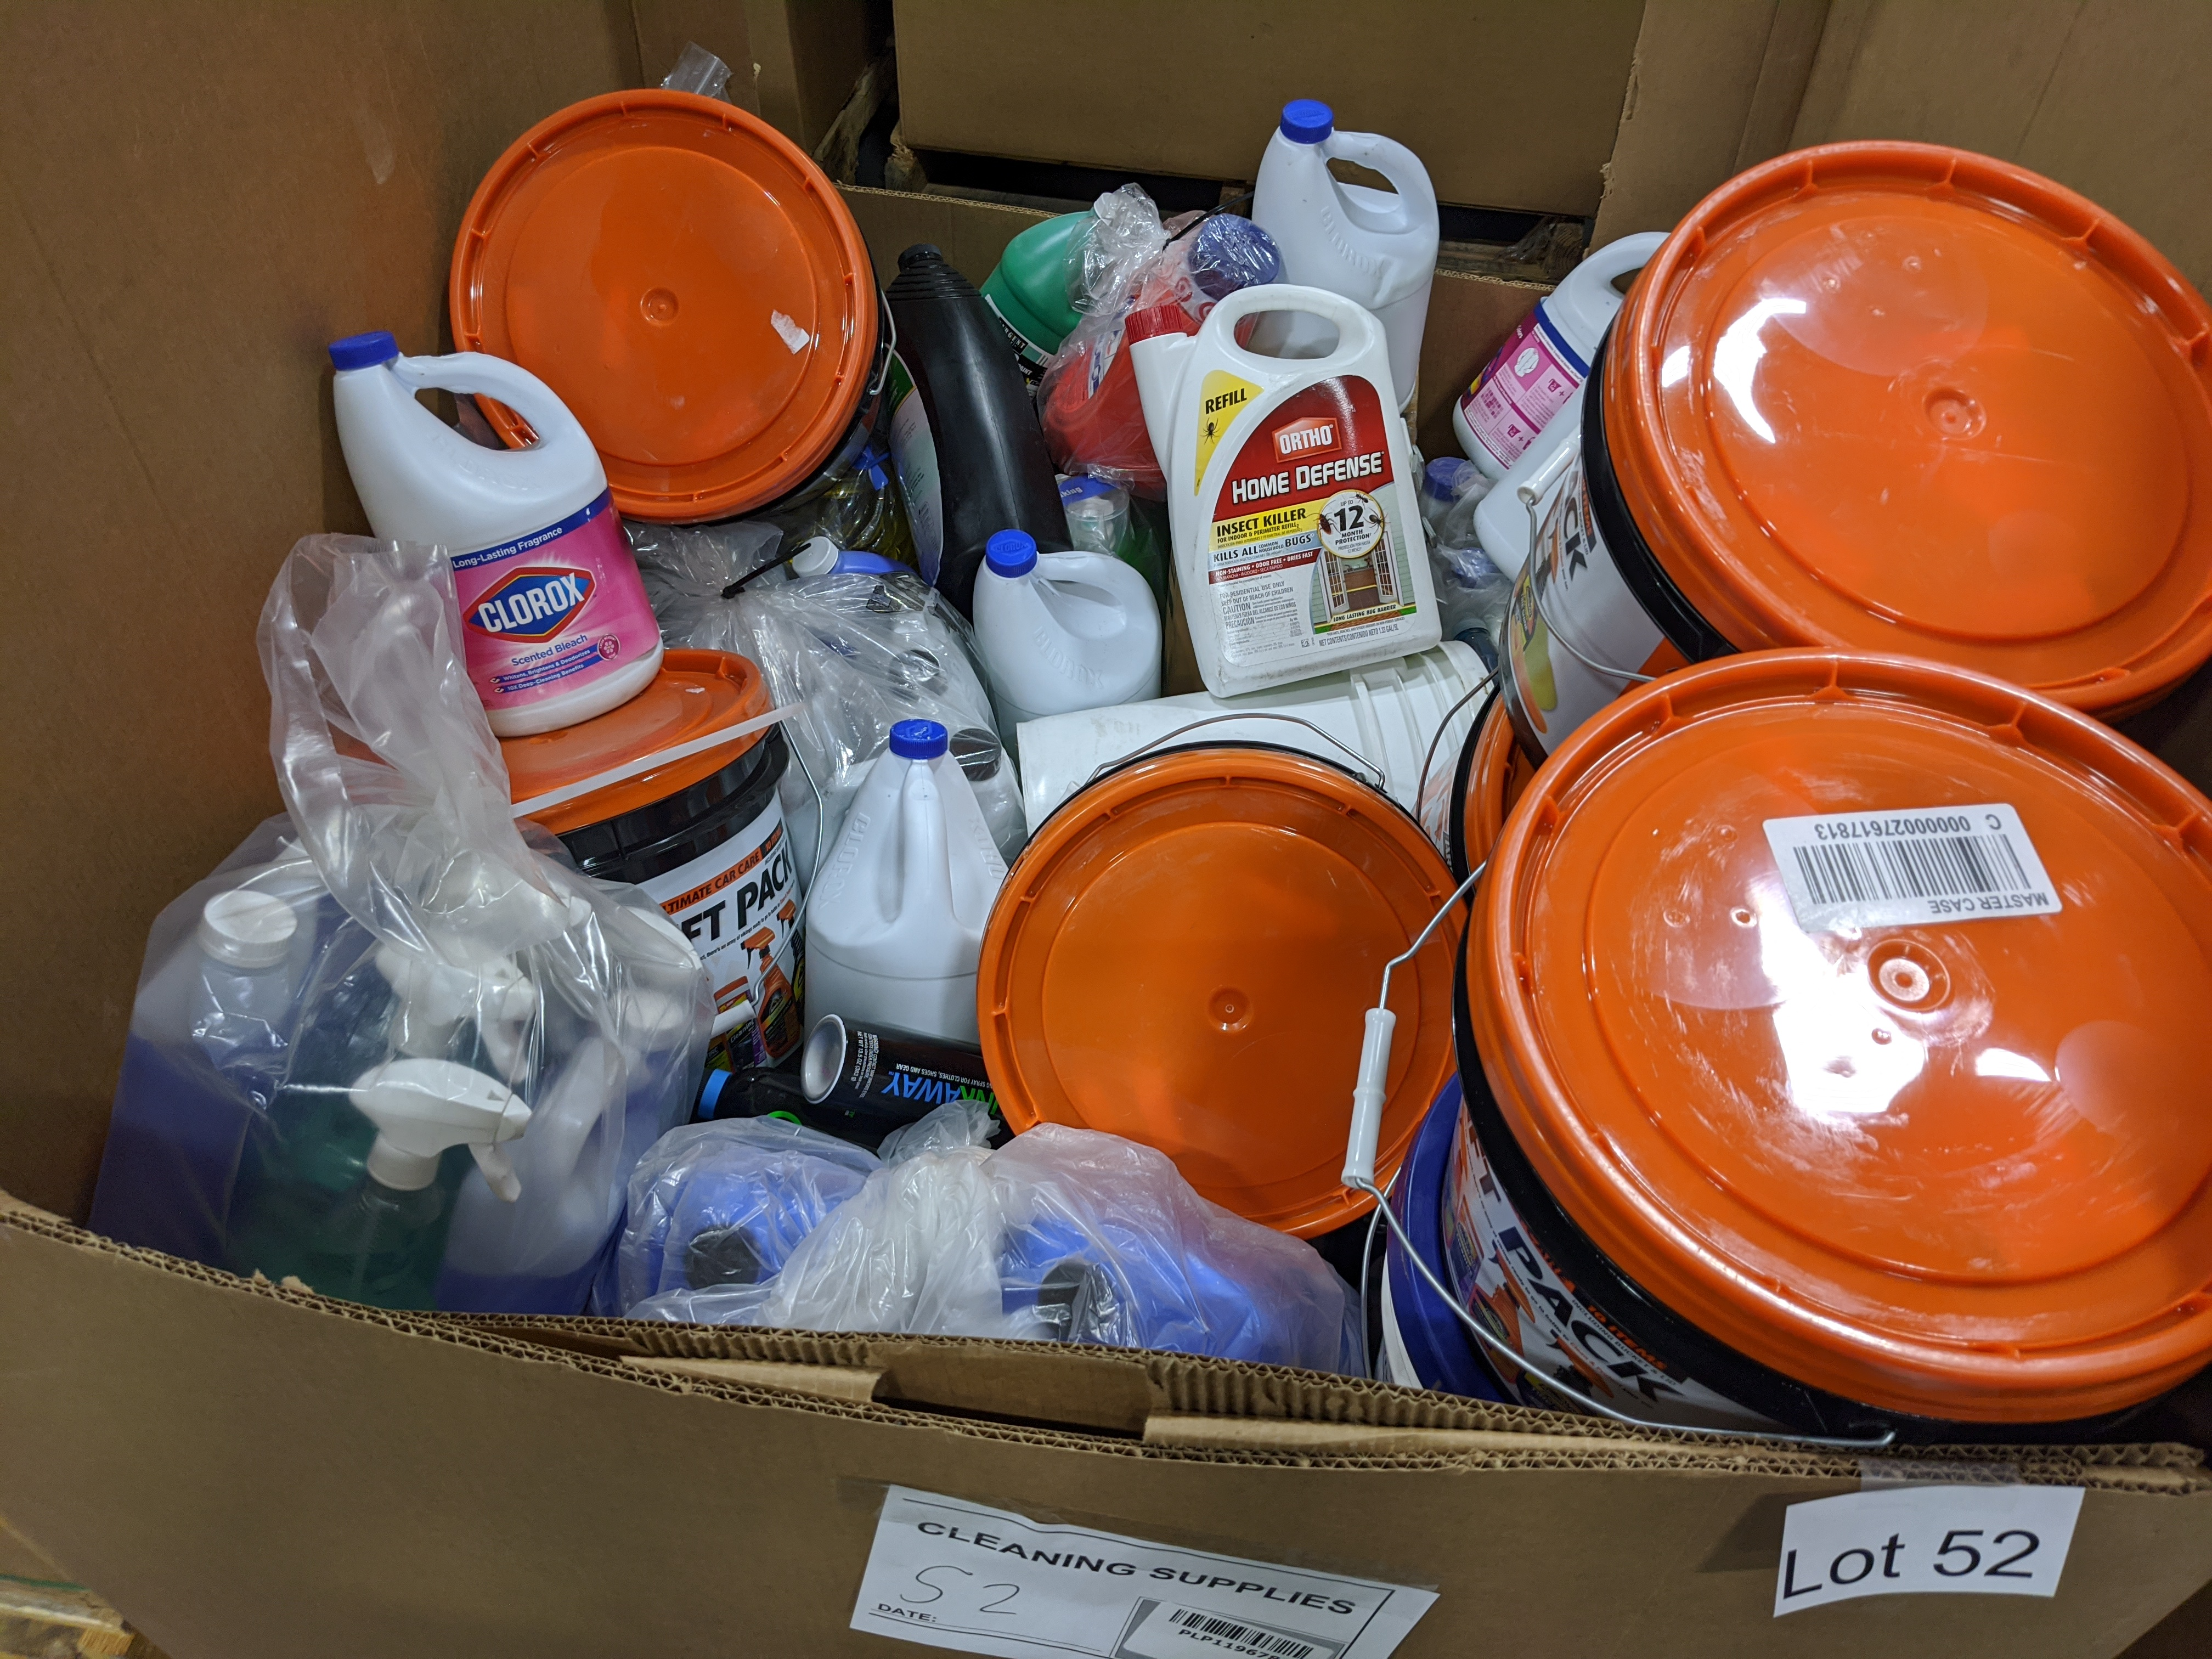 Lot 52 - Cleaning supplies